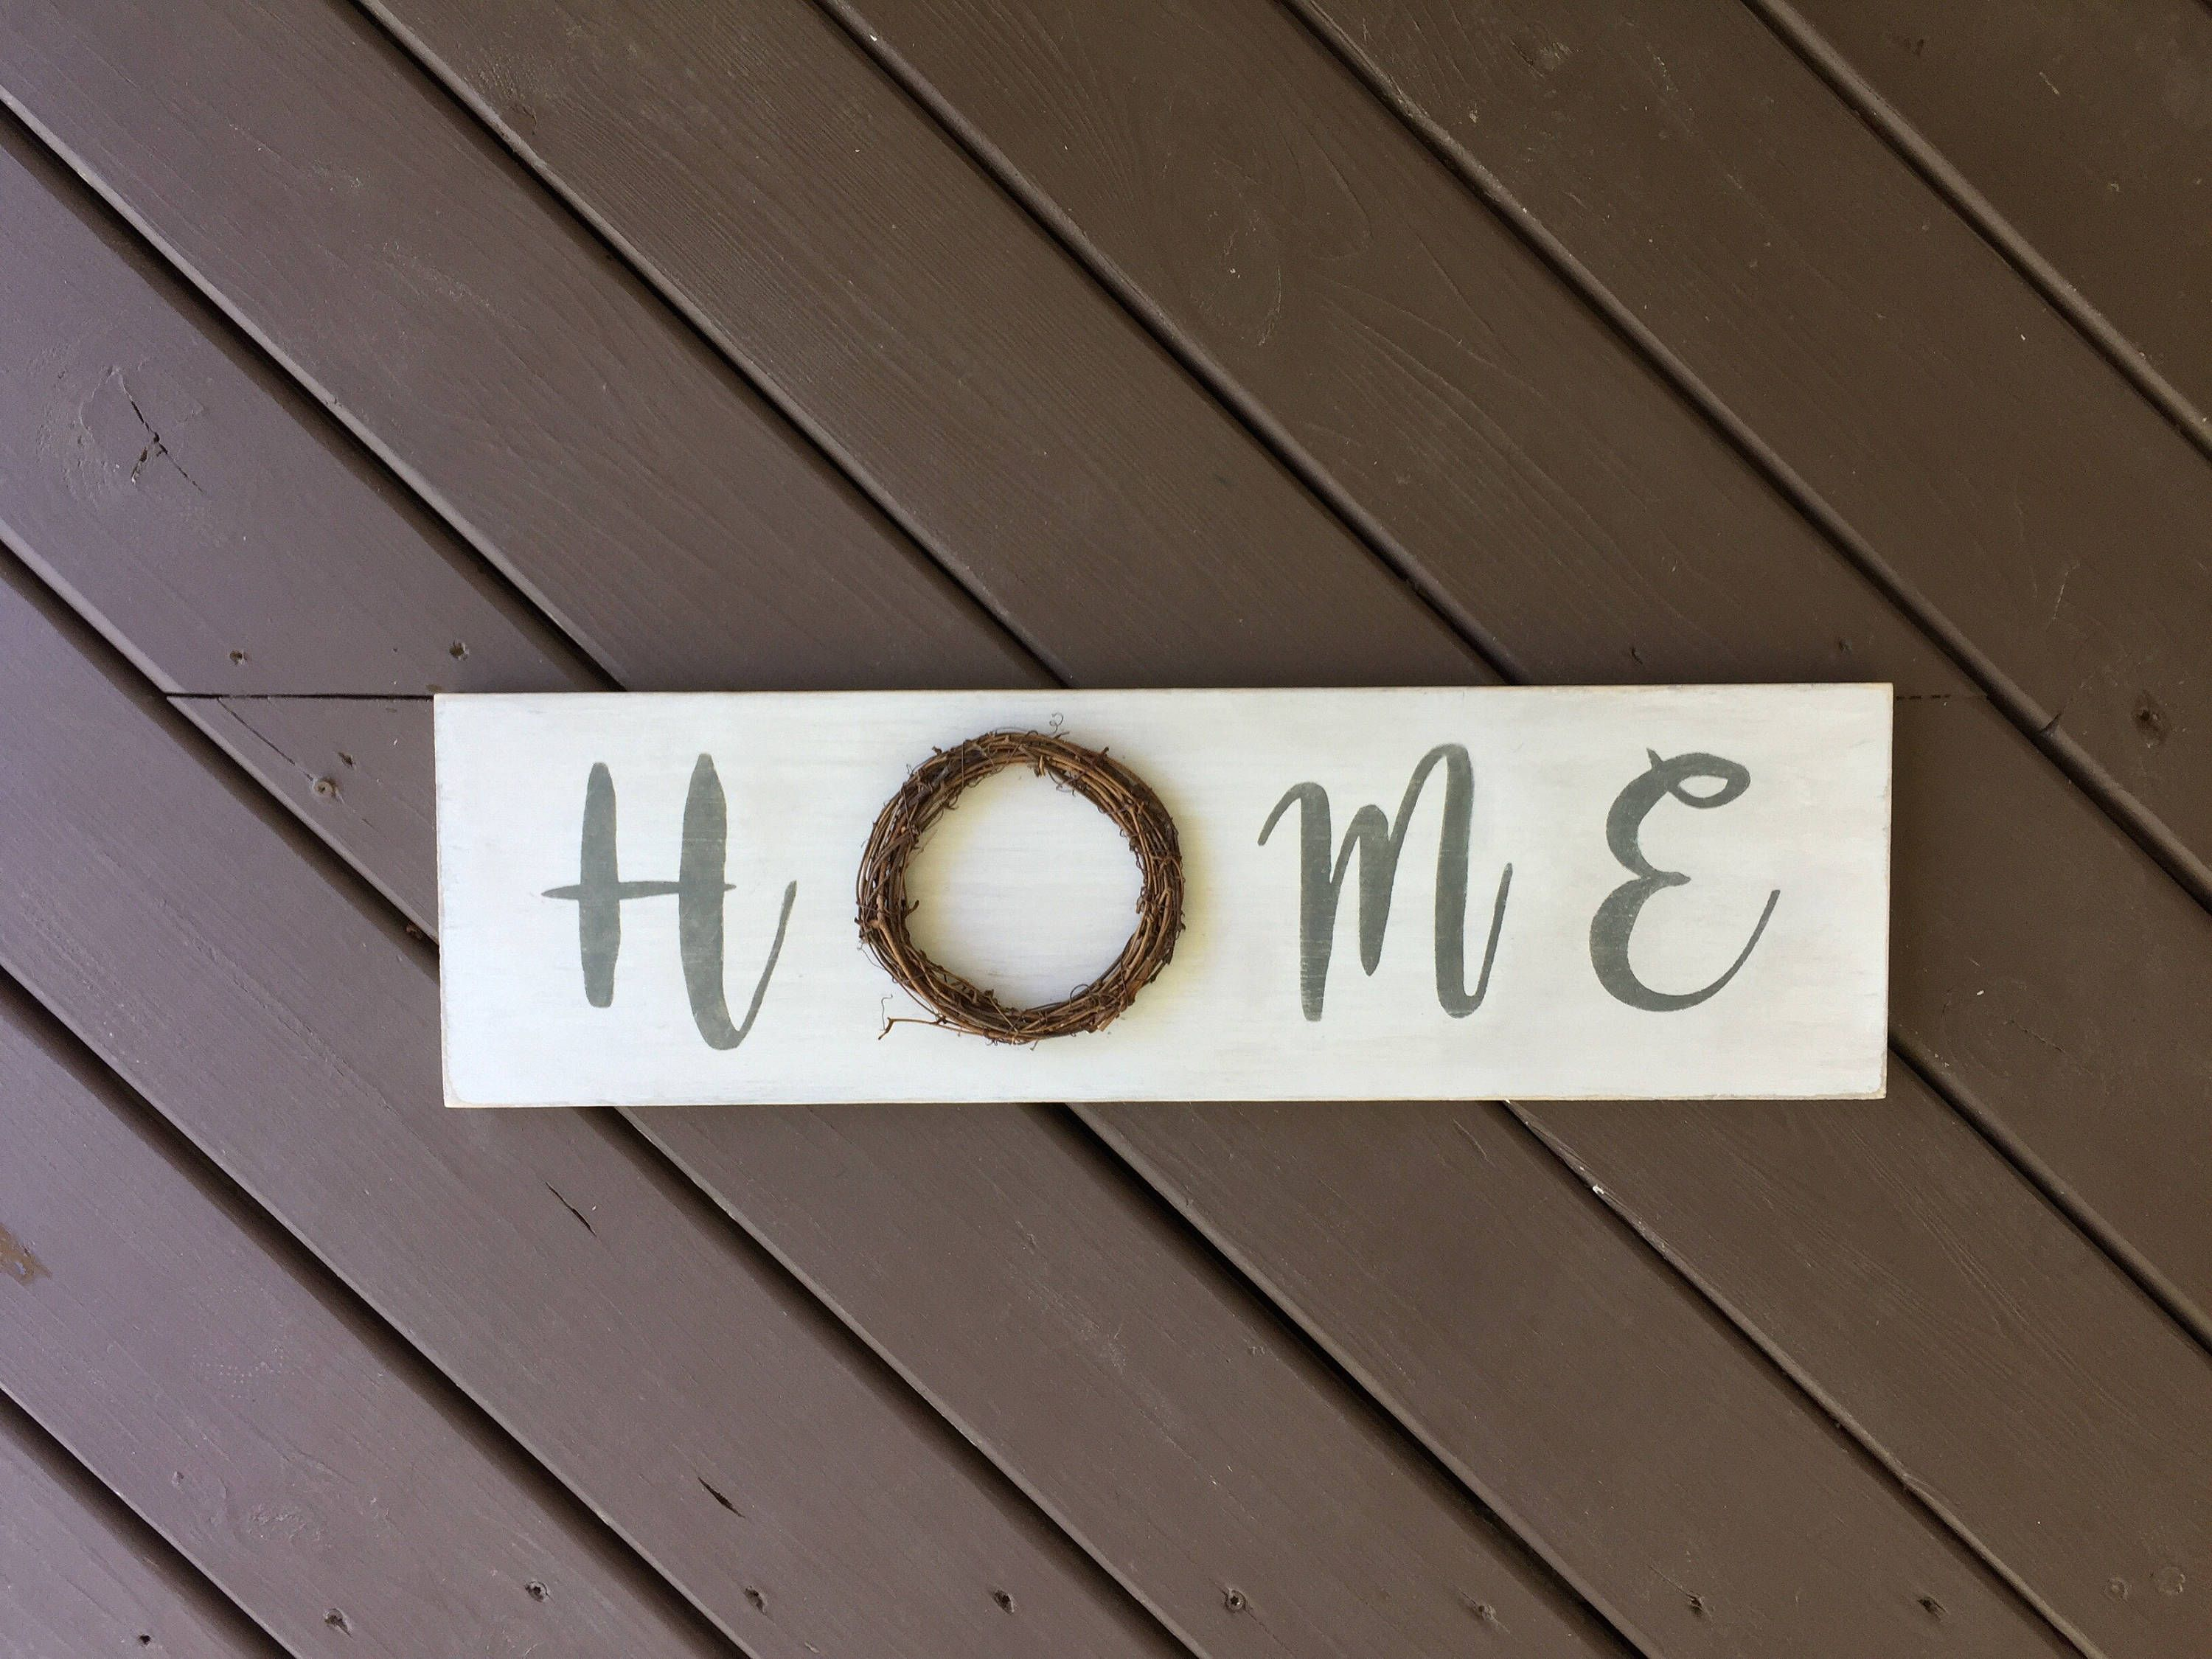 Home Wood Sign, Personalized Wood Sign, Wreath Signs, Home Decor, Custom  Wood Signs, Wood Signs, Kitchen Signs, Wall Decor, Farmhouse Signs